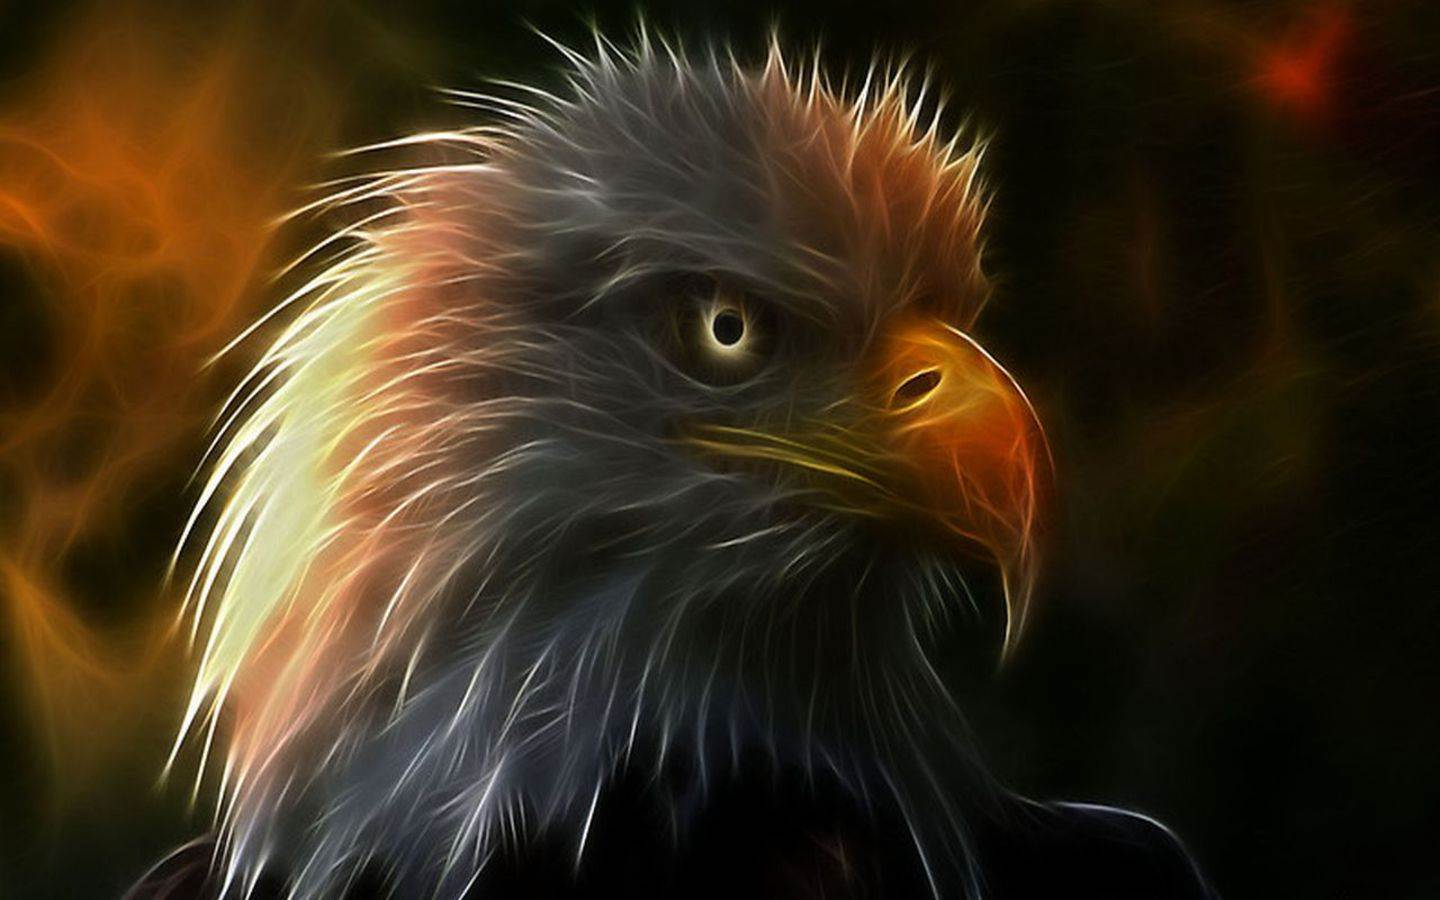 Eagle wallpaper  Android Apps on Google Play 1440x900